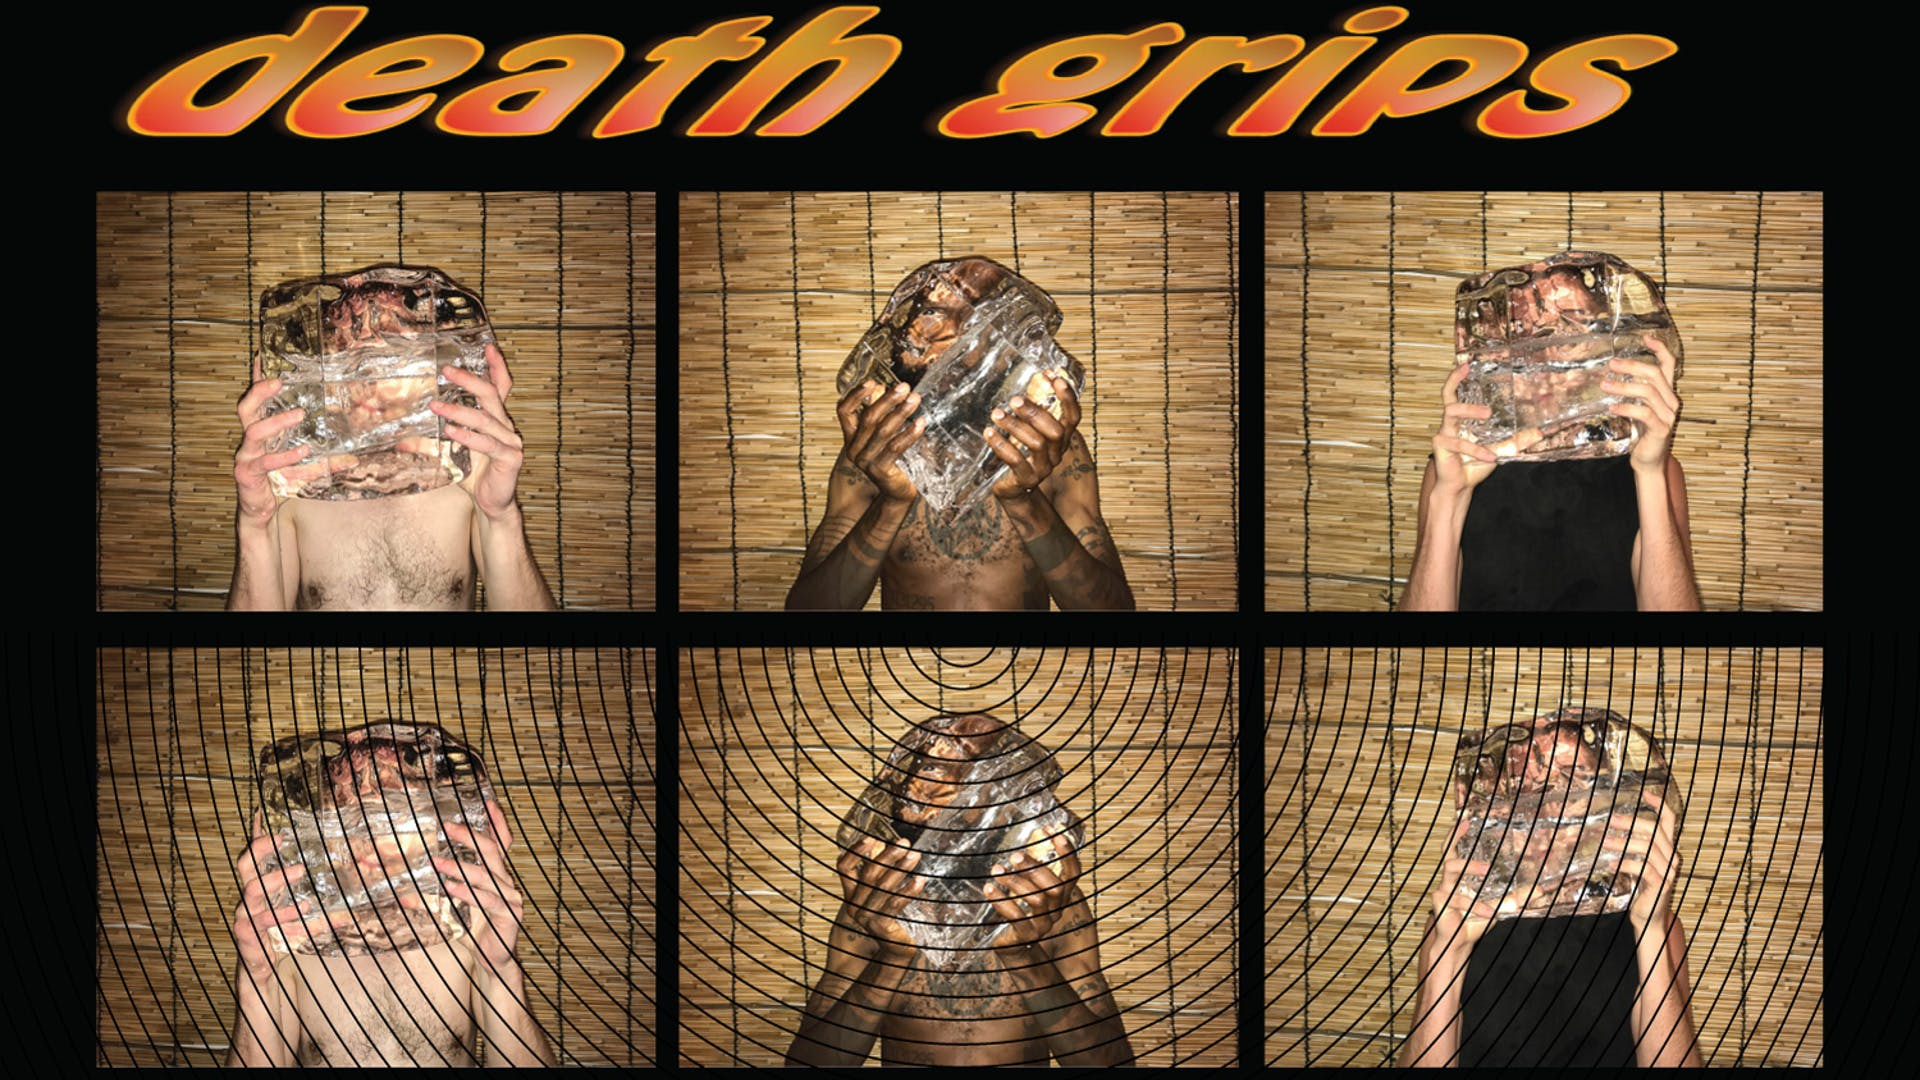 PROFILE: DEATH GRIPS